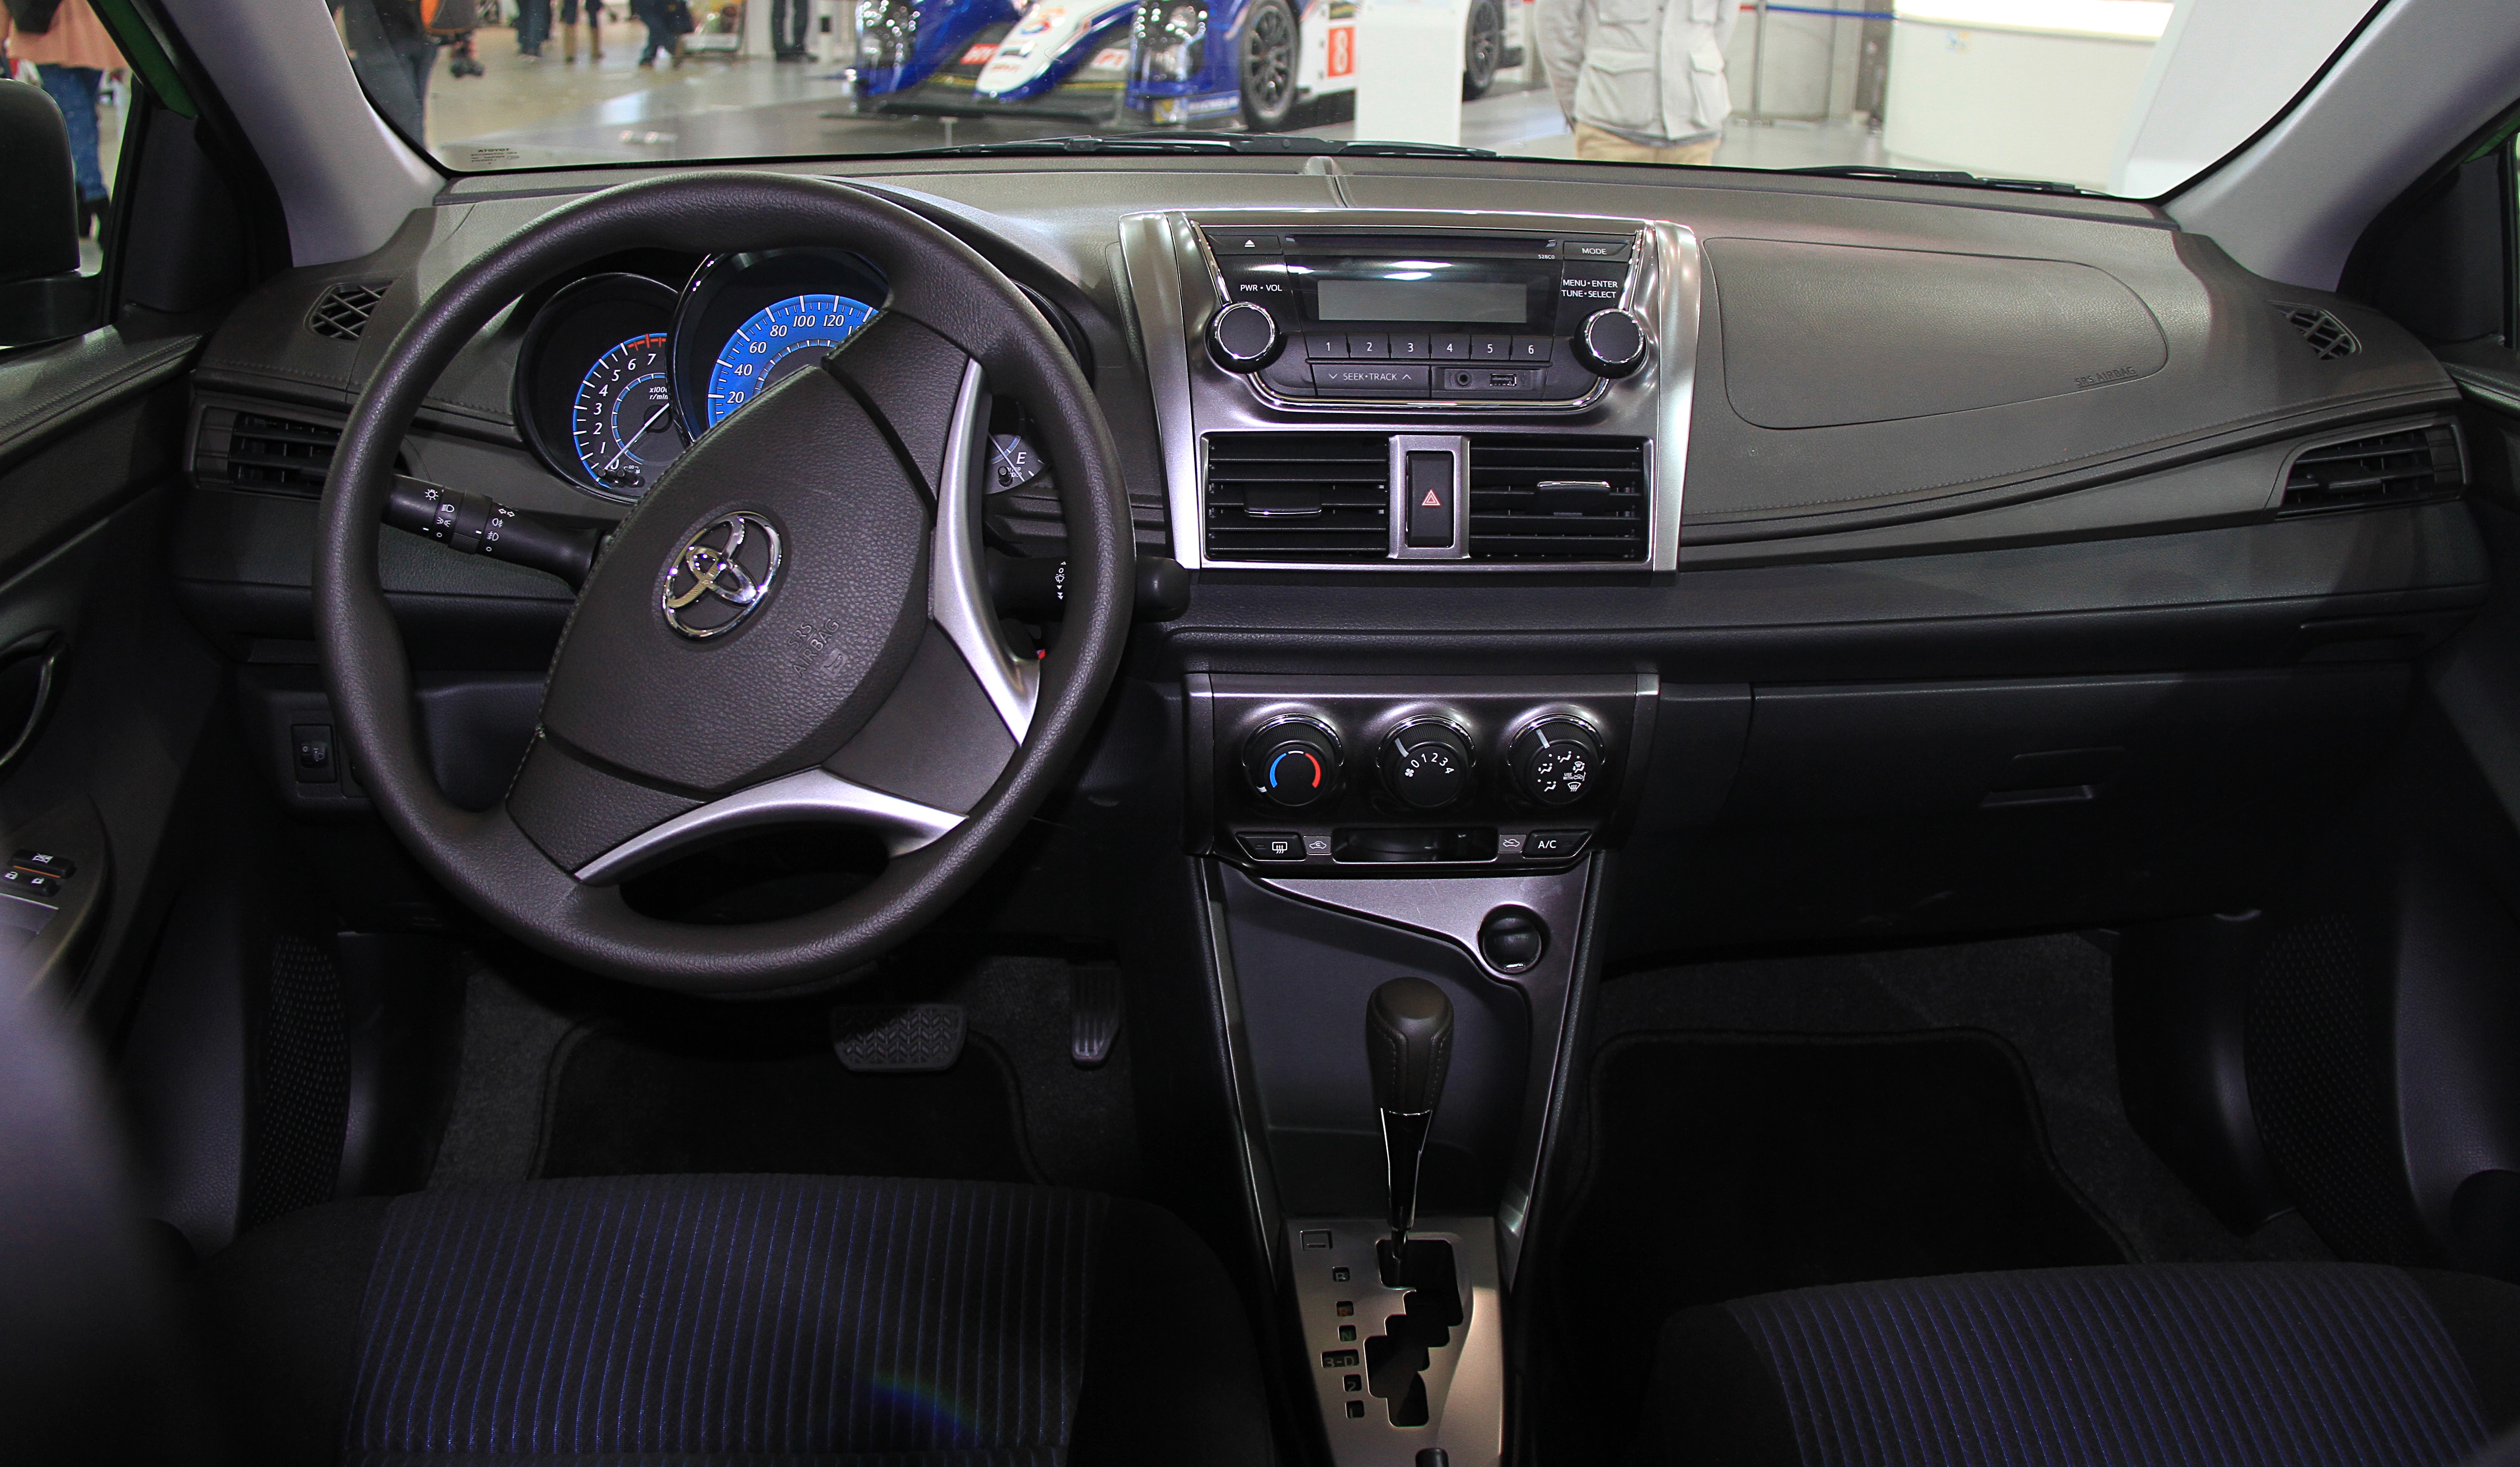 Toyota Yaris Hatchback 2014 Interior | www.pixshark.com - Images Galleries With A Bite!